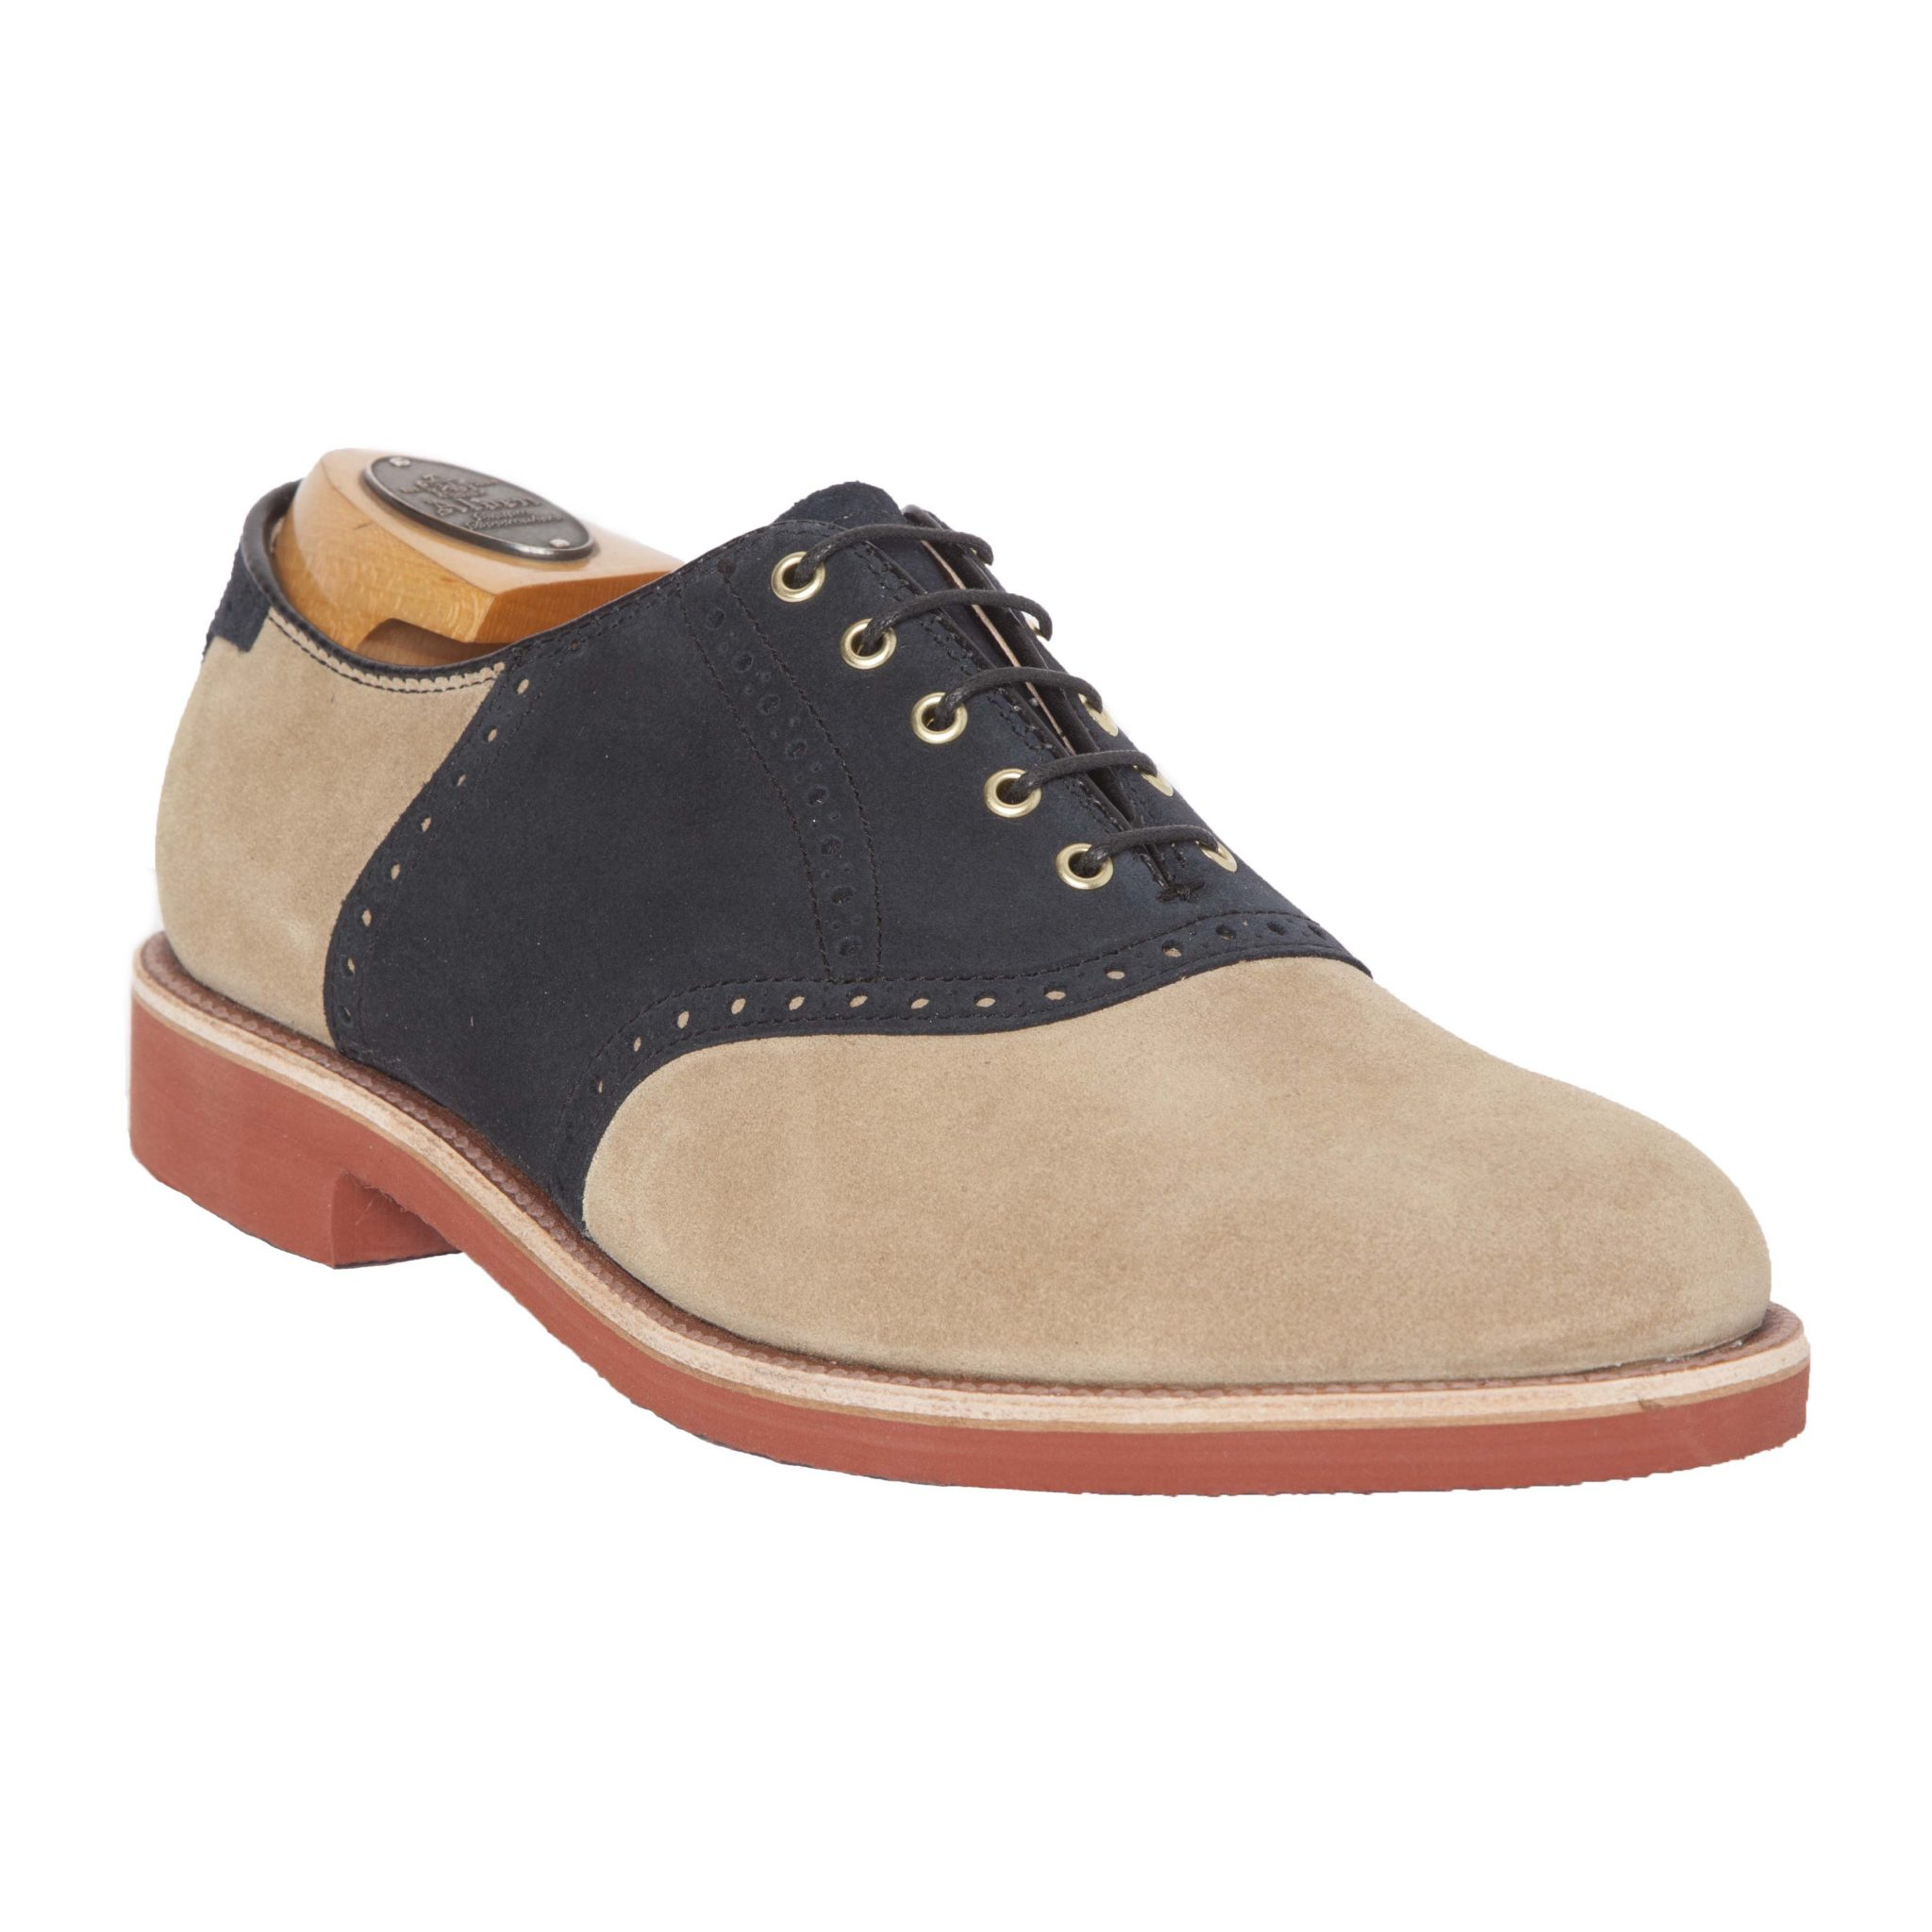 Suede Saddle Shoes